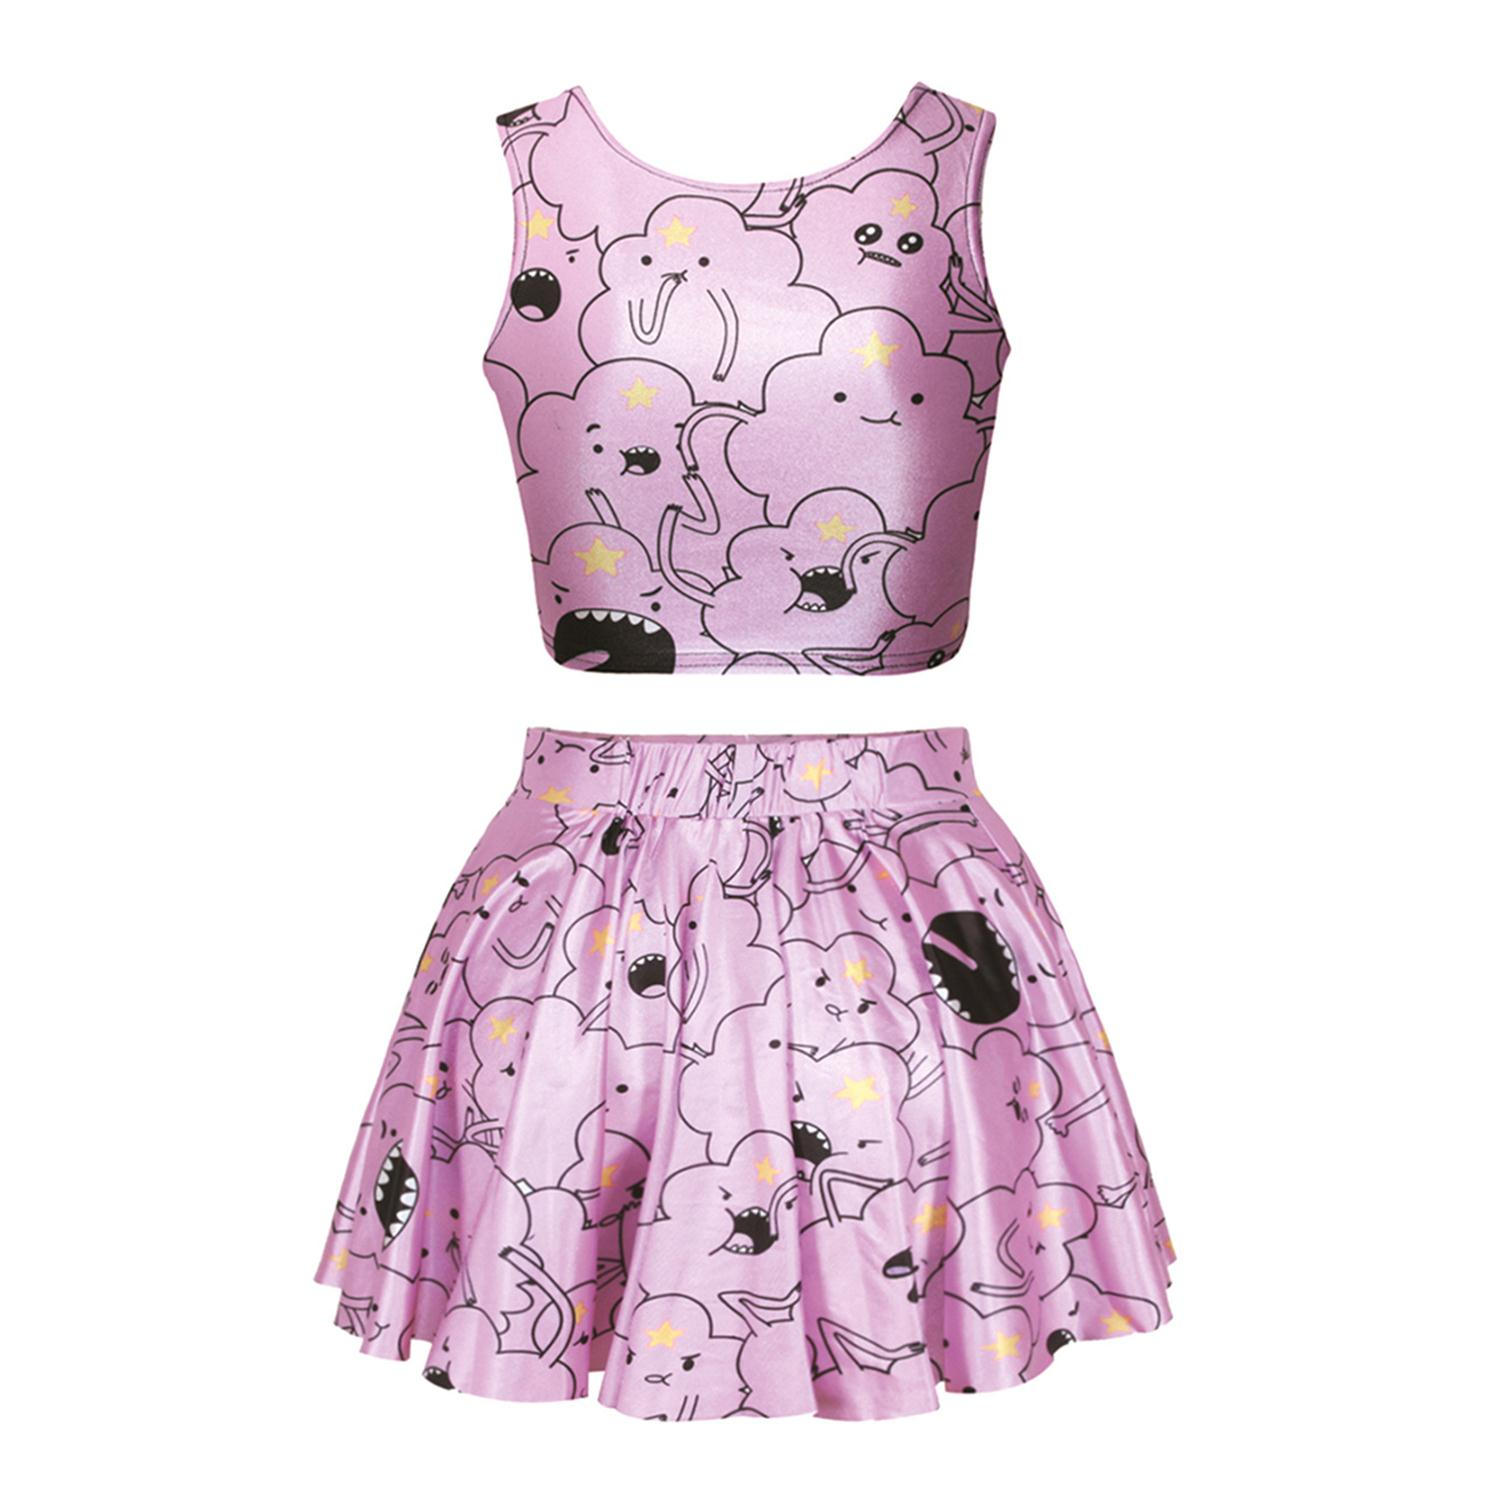 2016 New Fashion Womens 2 Piece Summer Sets New Style 2 Piece Set Fantastic Cloud Print Ball Gown Vs Love Pink Women Suits